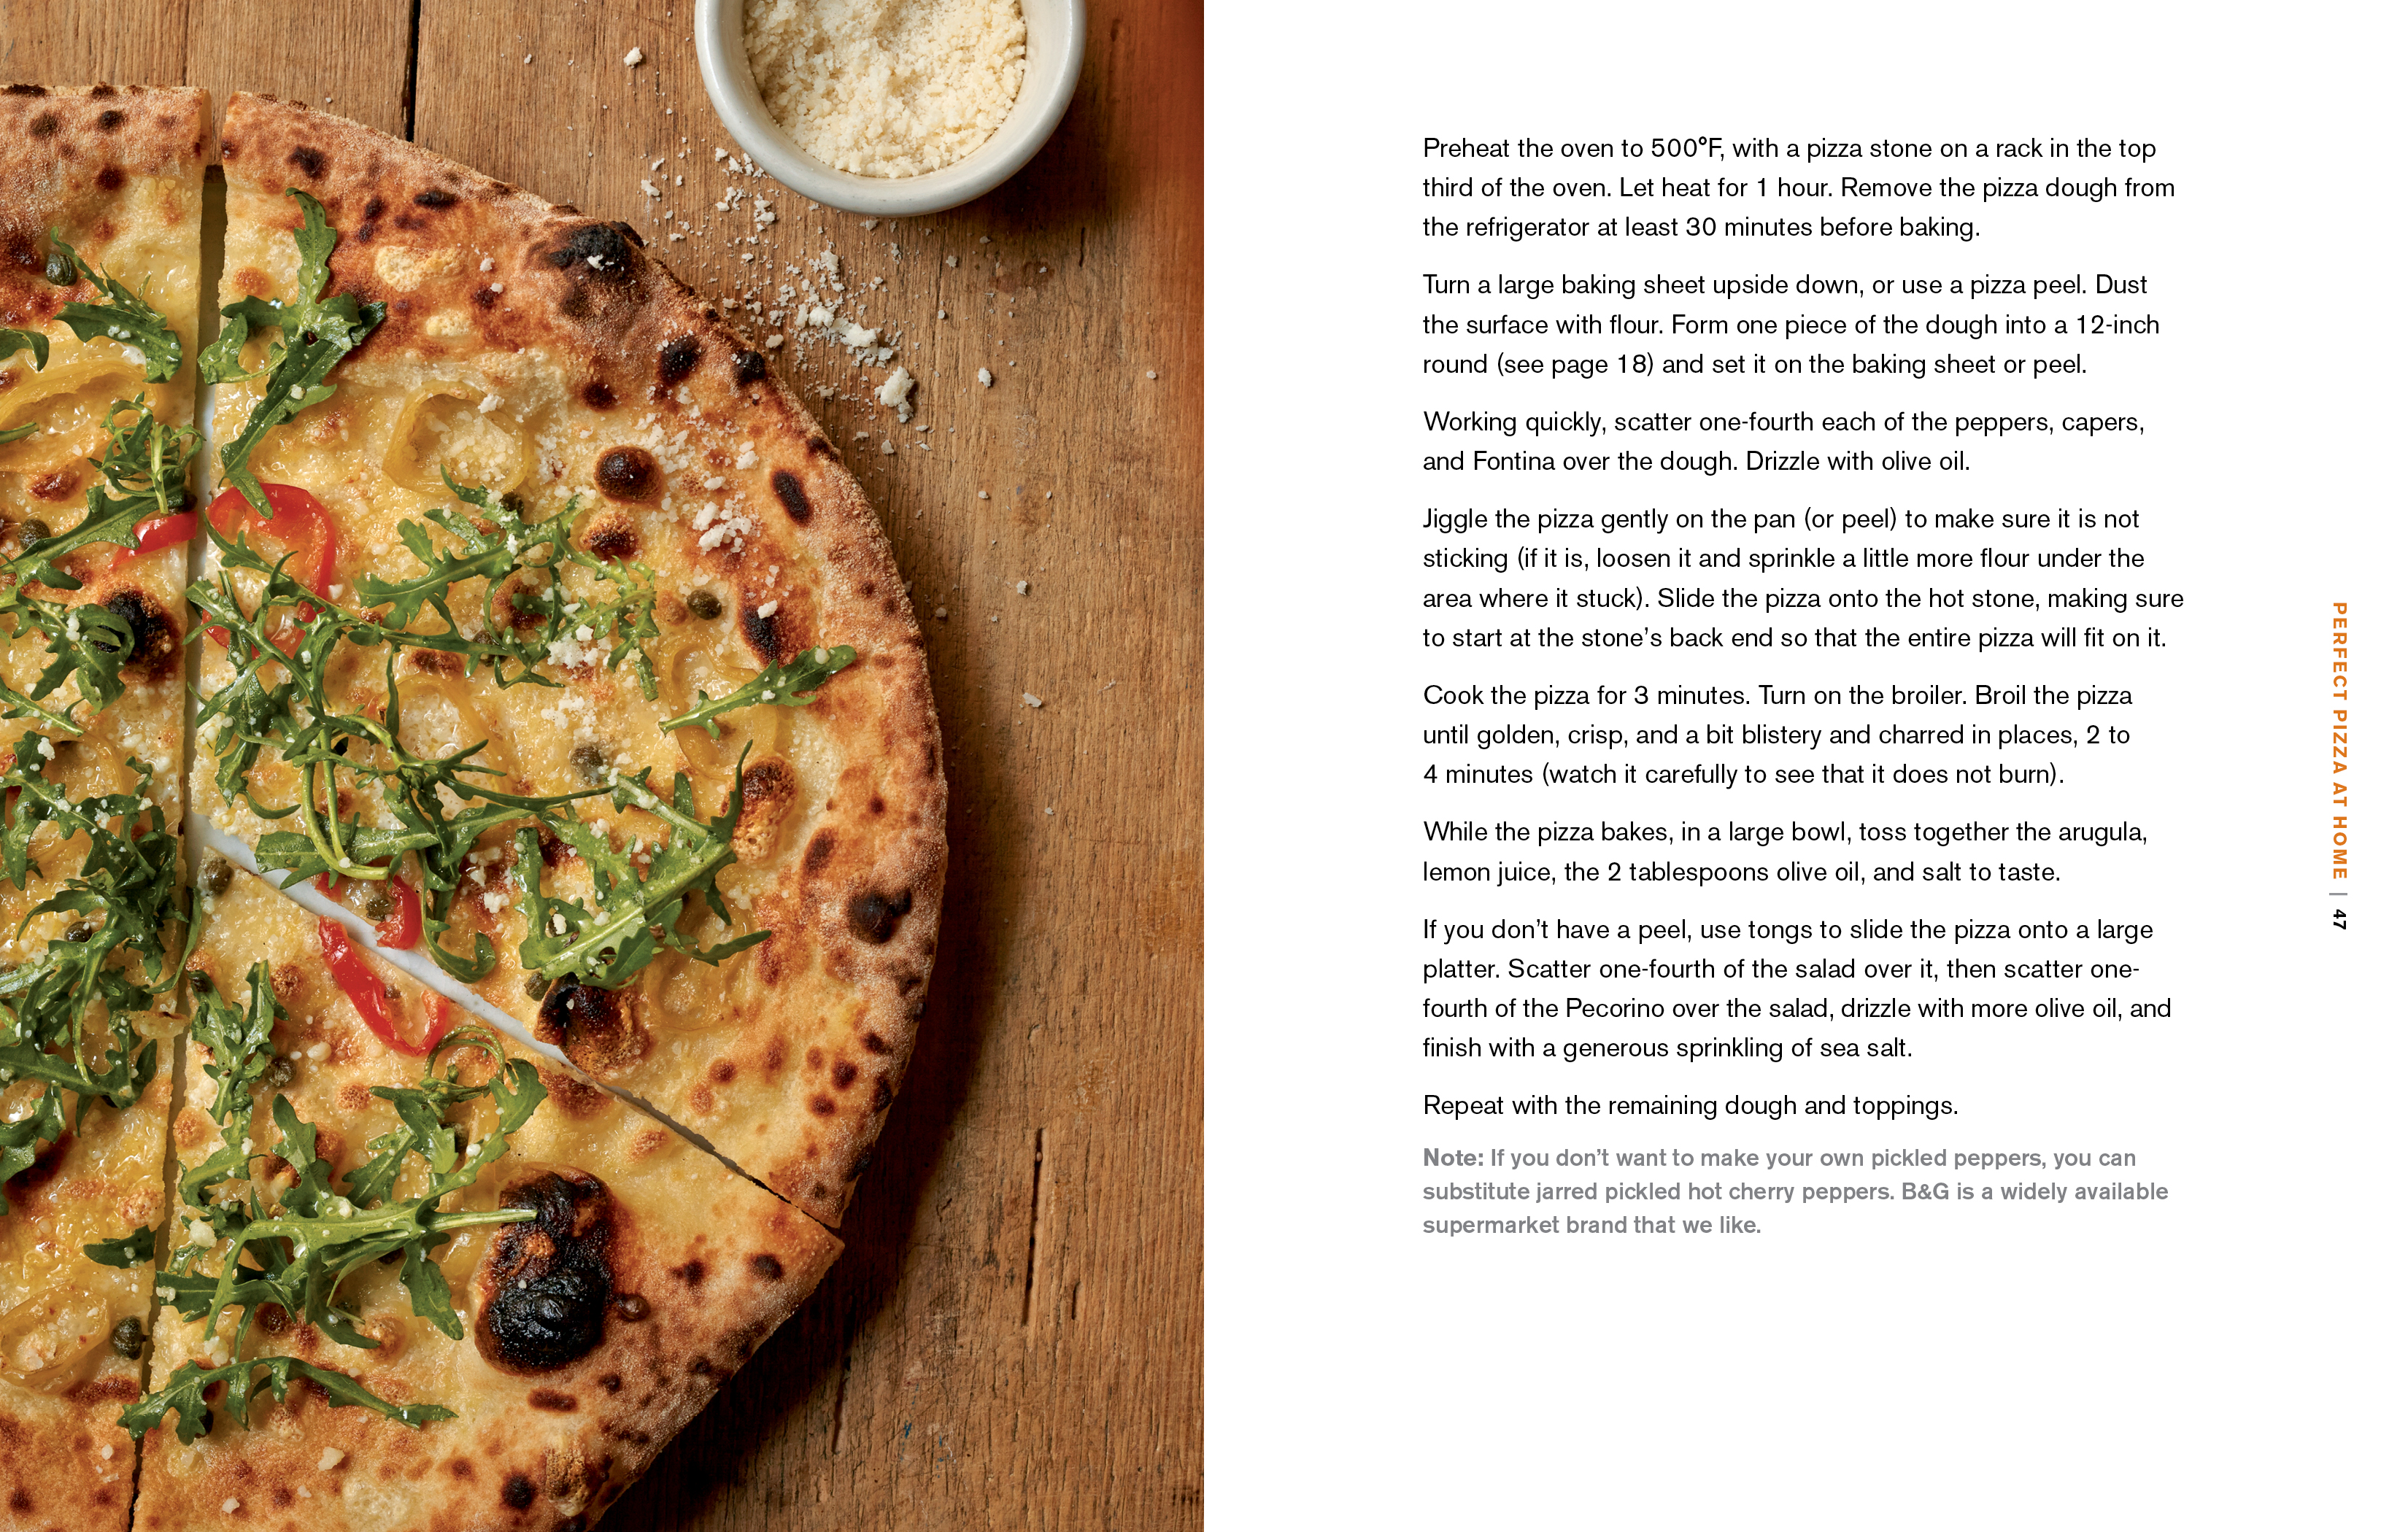 The Artisanal Kitchen: Perfect Pizza at Home - Workman Publishing